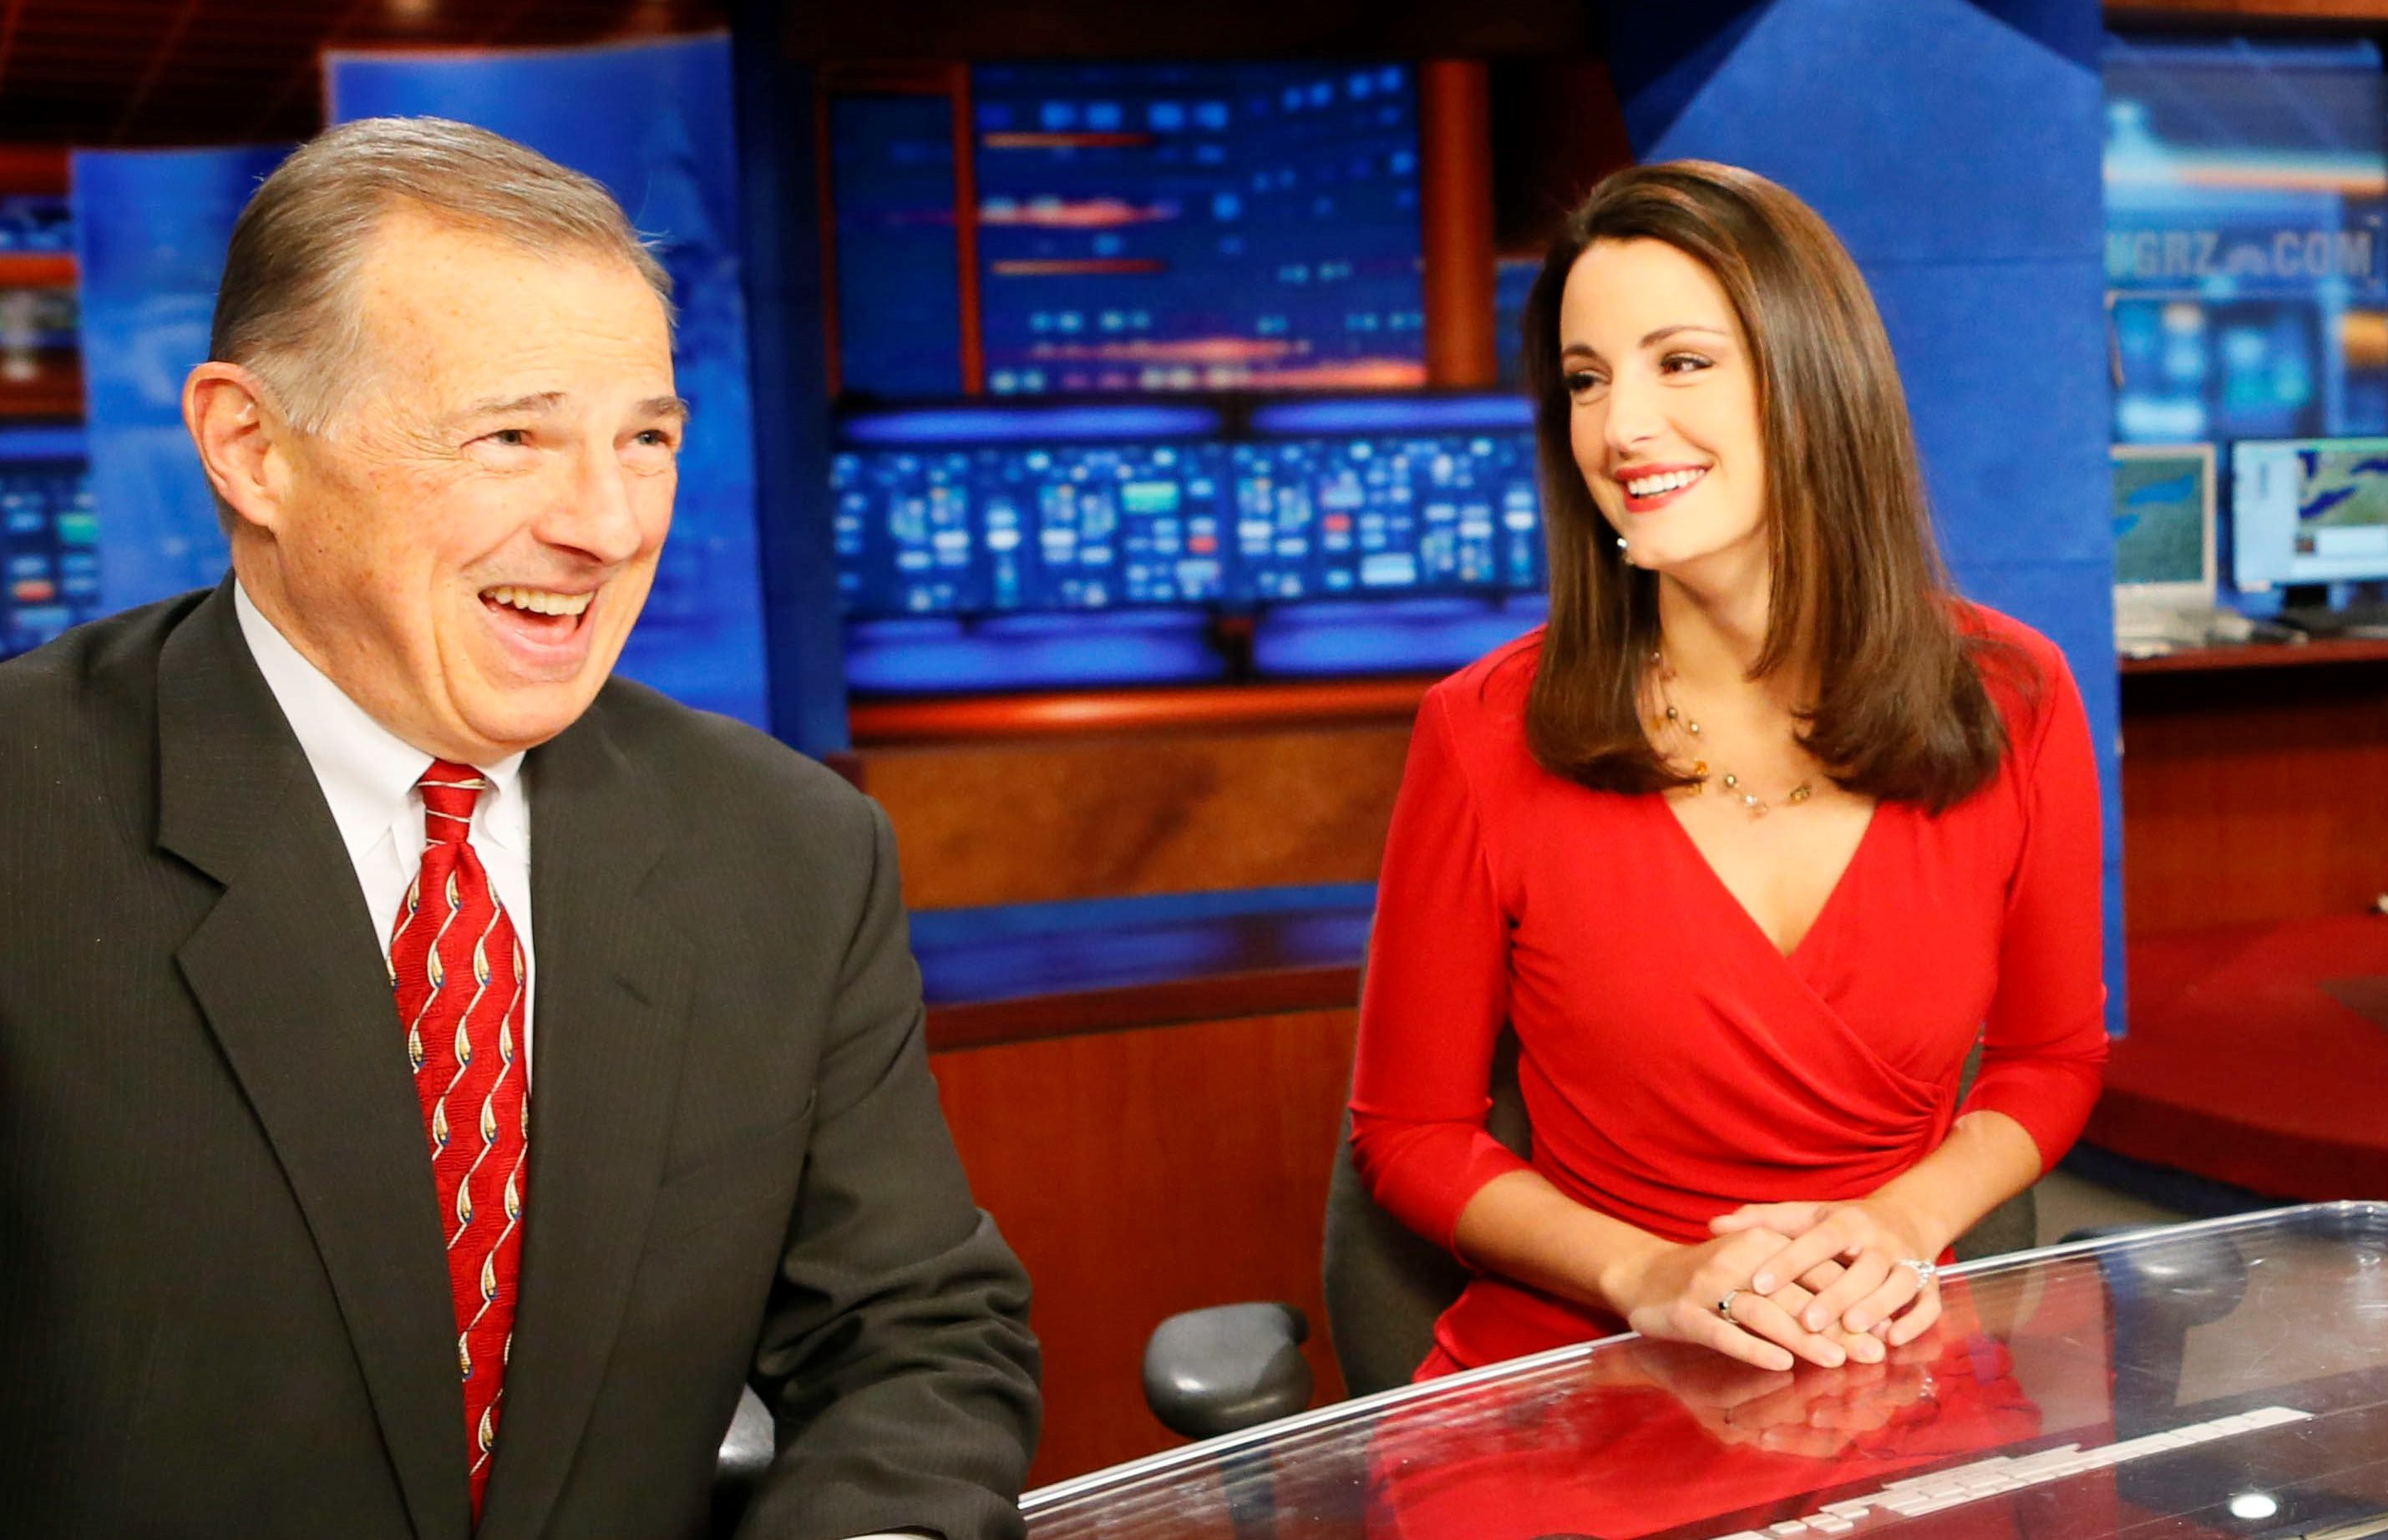 John Beard's departure is one of many changes coming to morning TV in Western New York. (Buffalo News file photo)